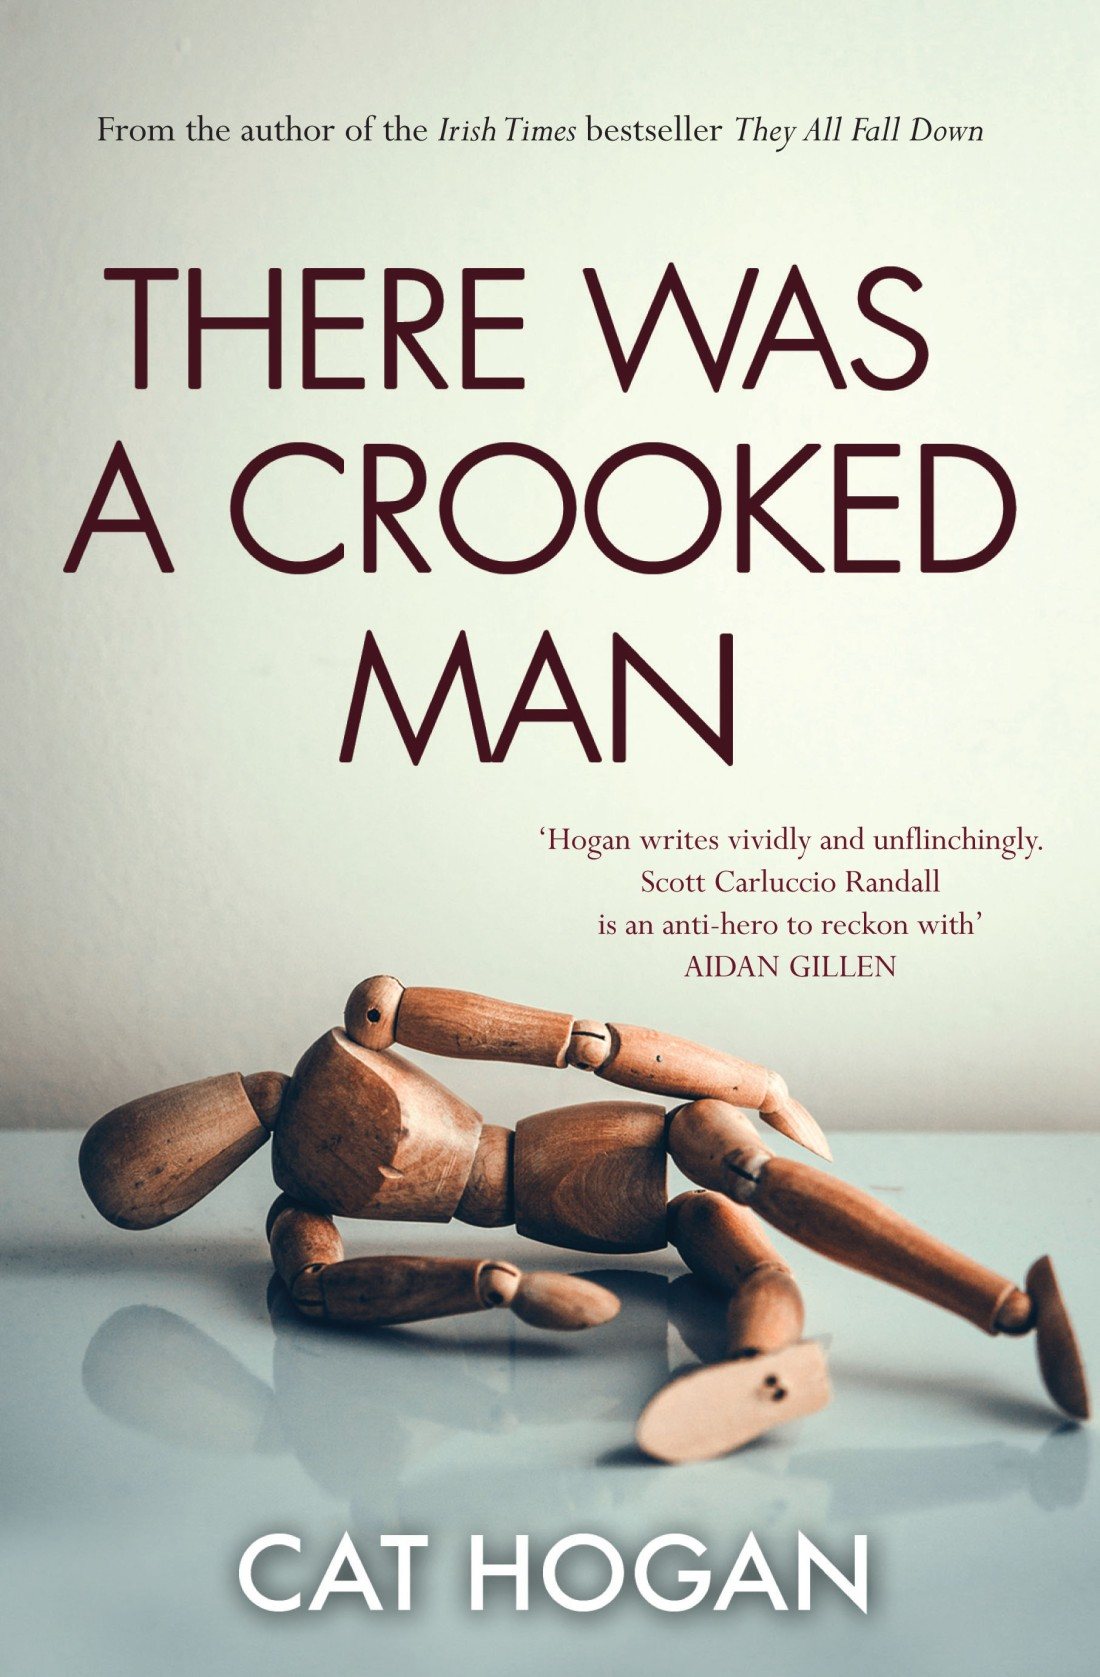 The Crooked Man cover REVISE-1 (1) (1).jpg